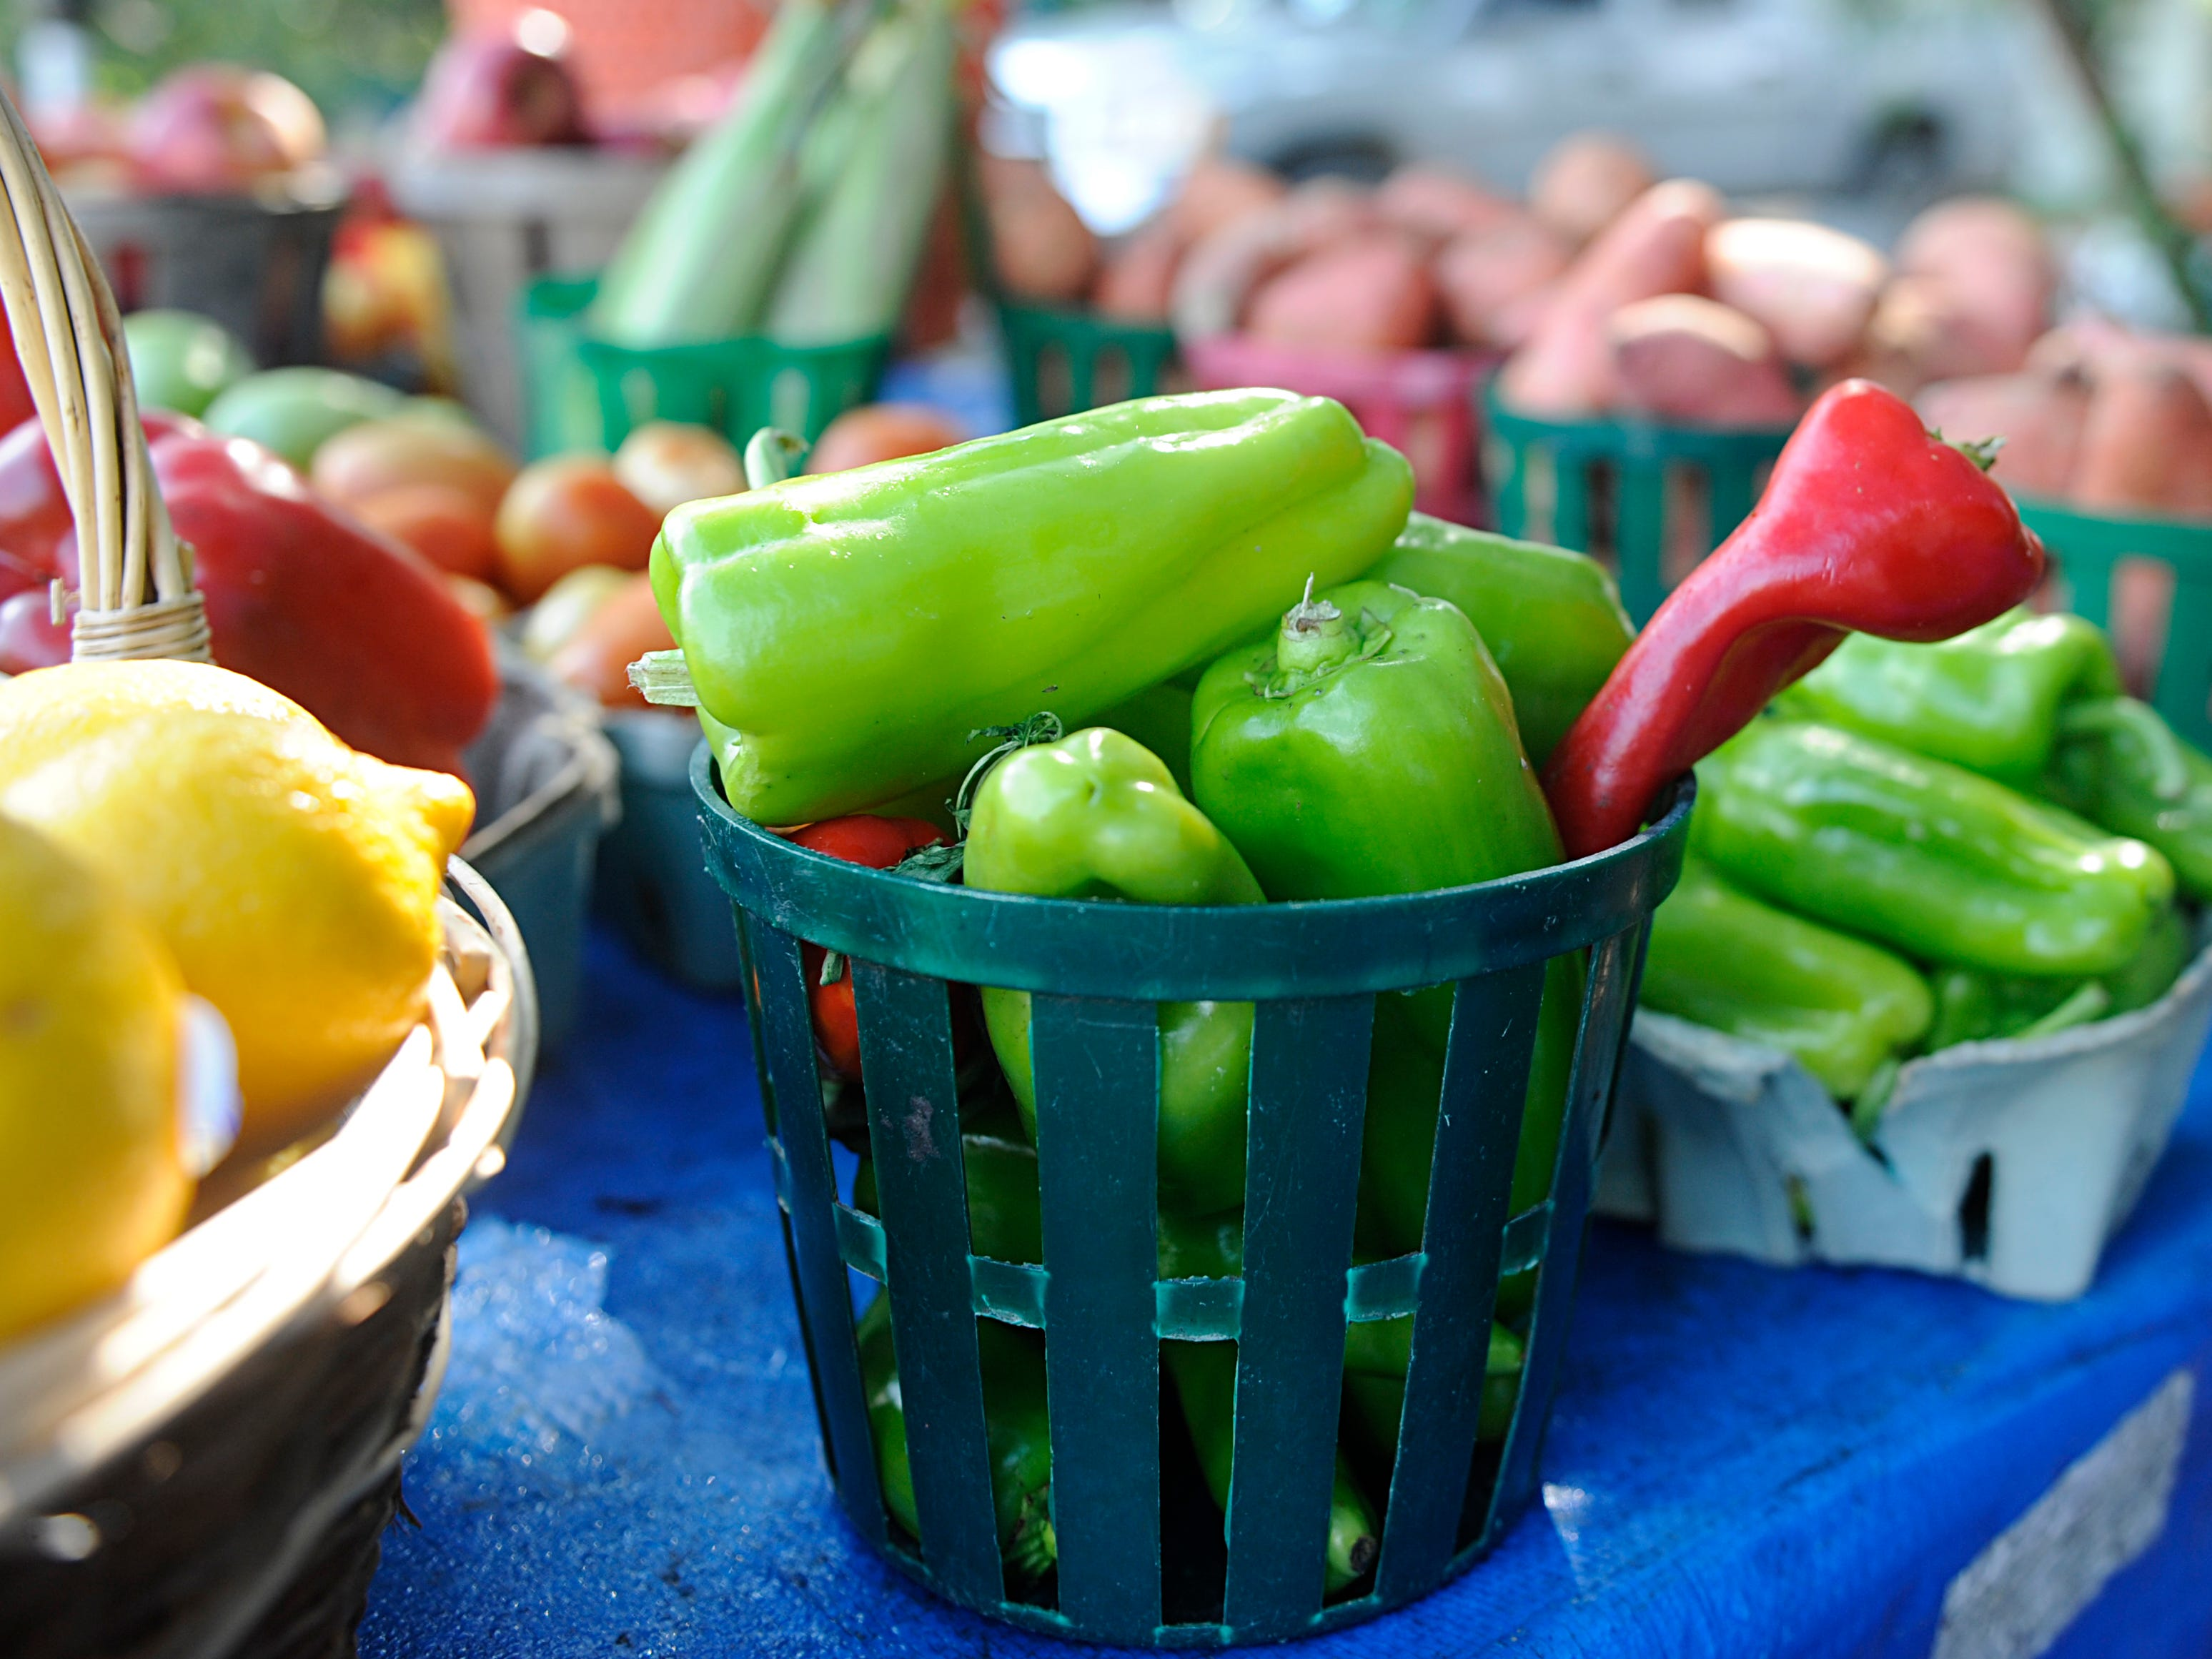 Fresh peppers on display at Dennis Santaniello's roadside farm market on Oak Road in Vineland.